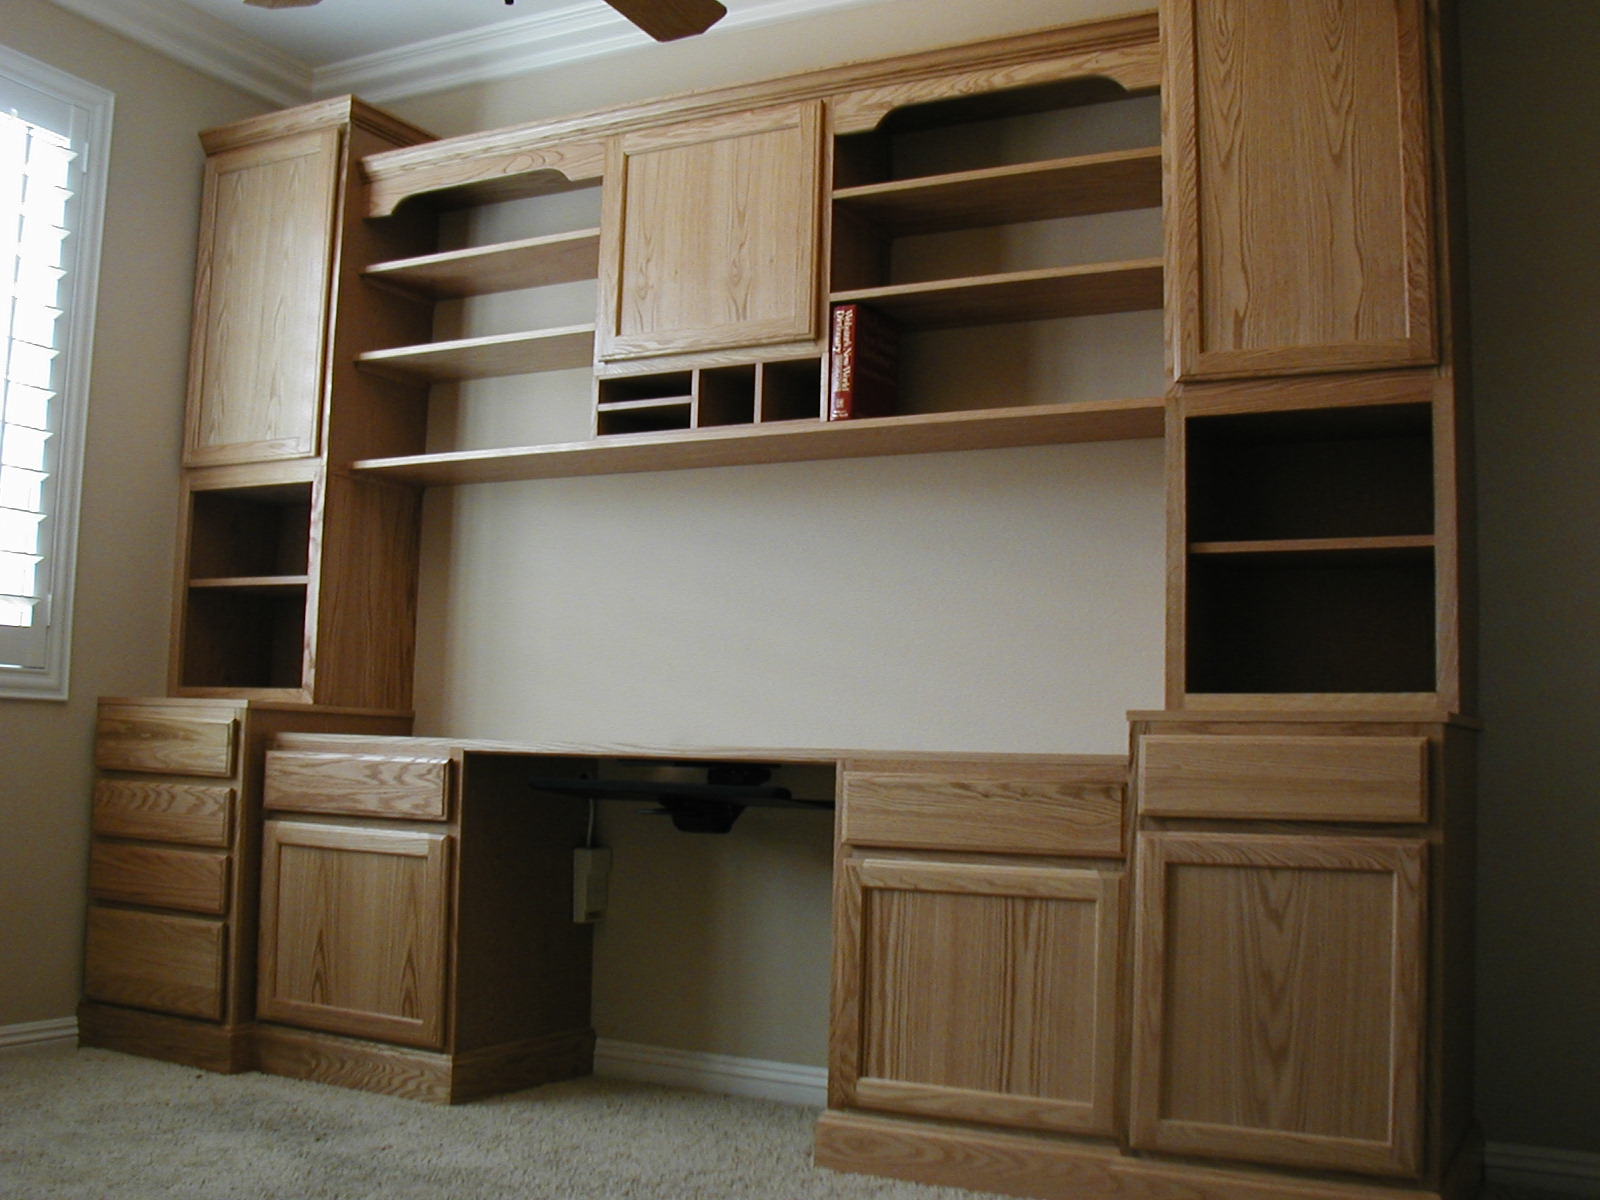 Knotty Alder Office Wall Cabinets With Shelf Storage Under Cabinet Pertaining To Office Wall Cupboards (Image 6 of 15)